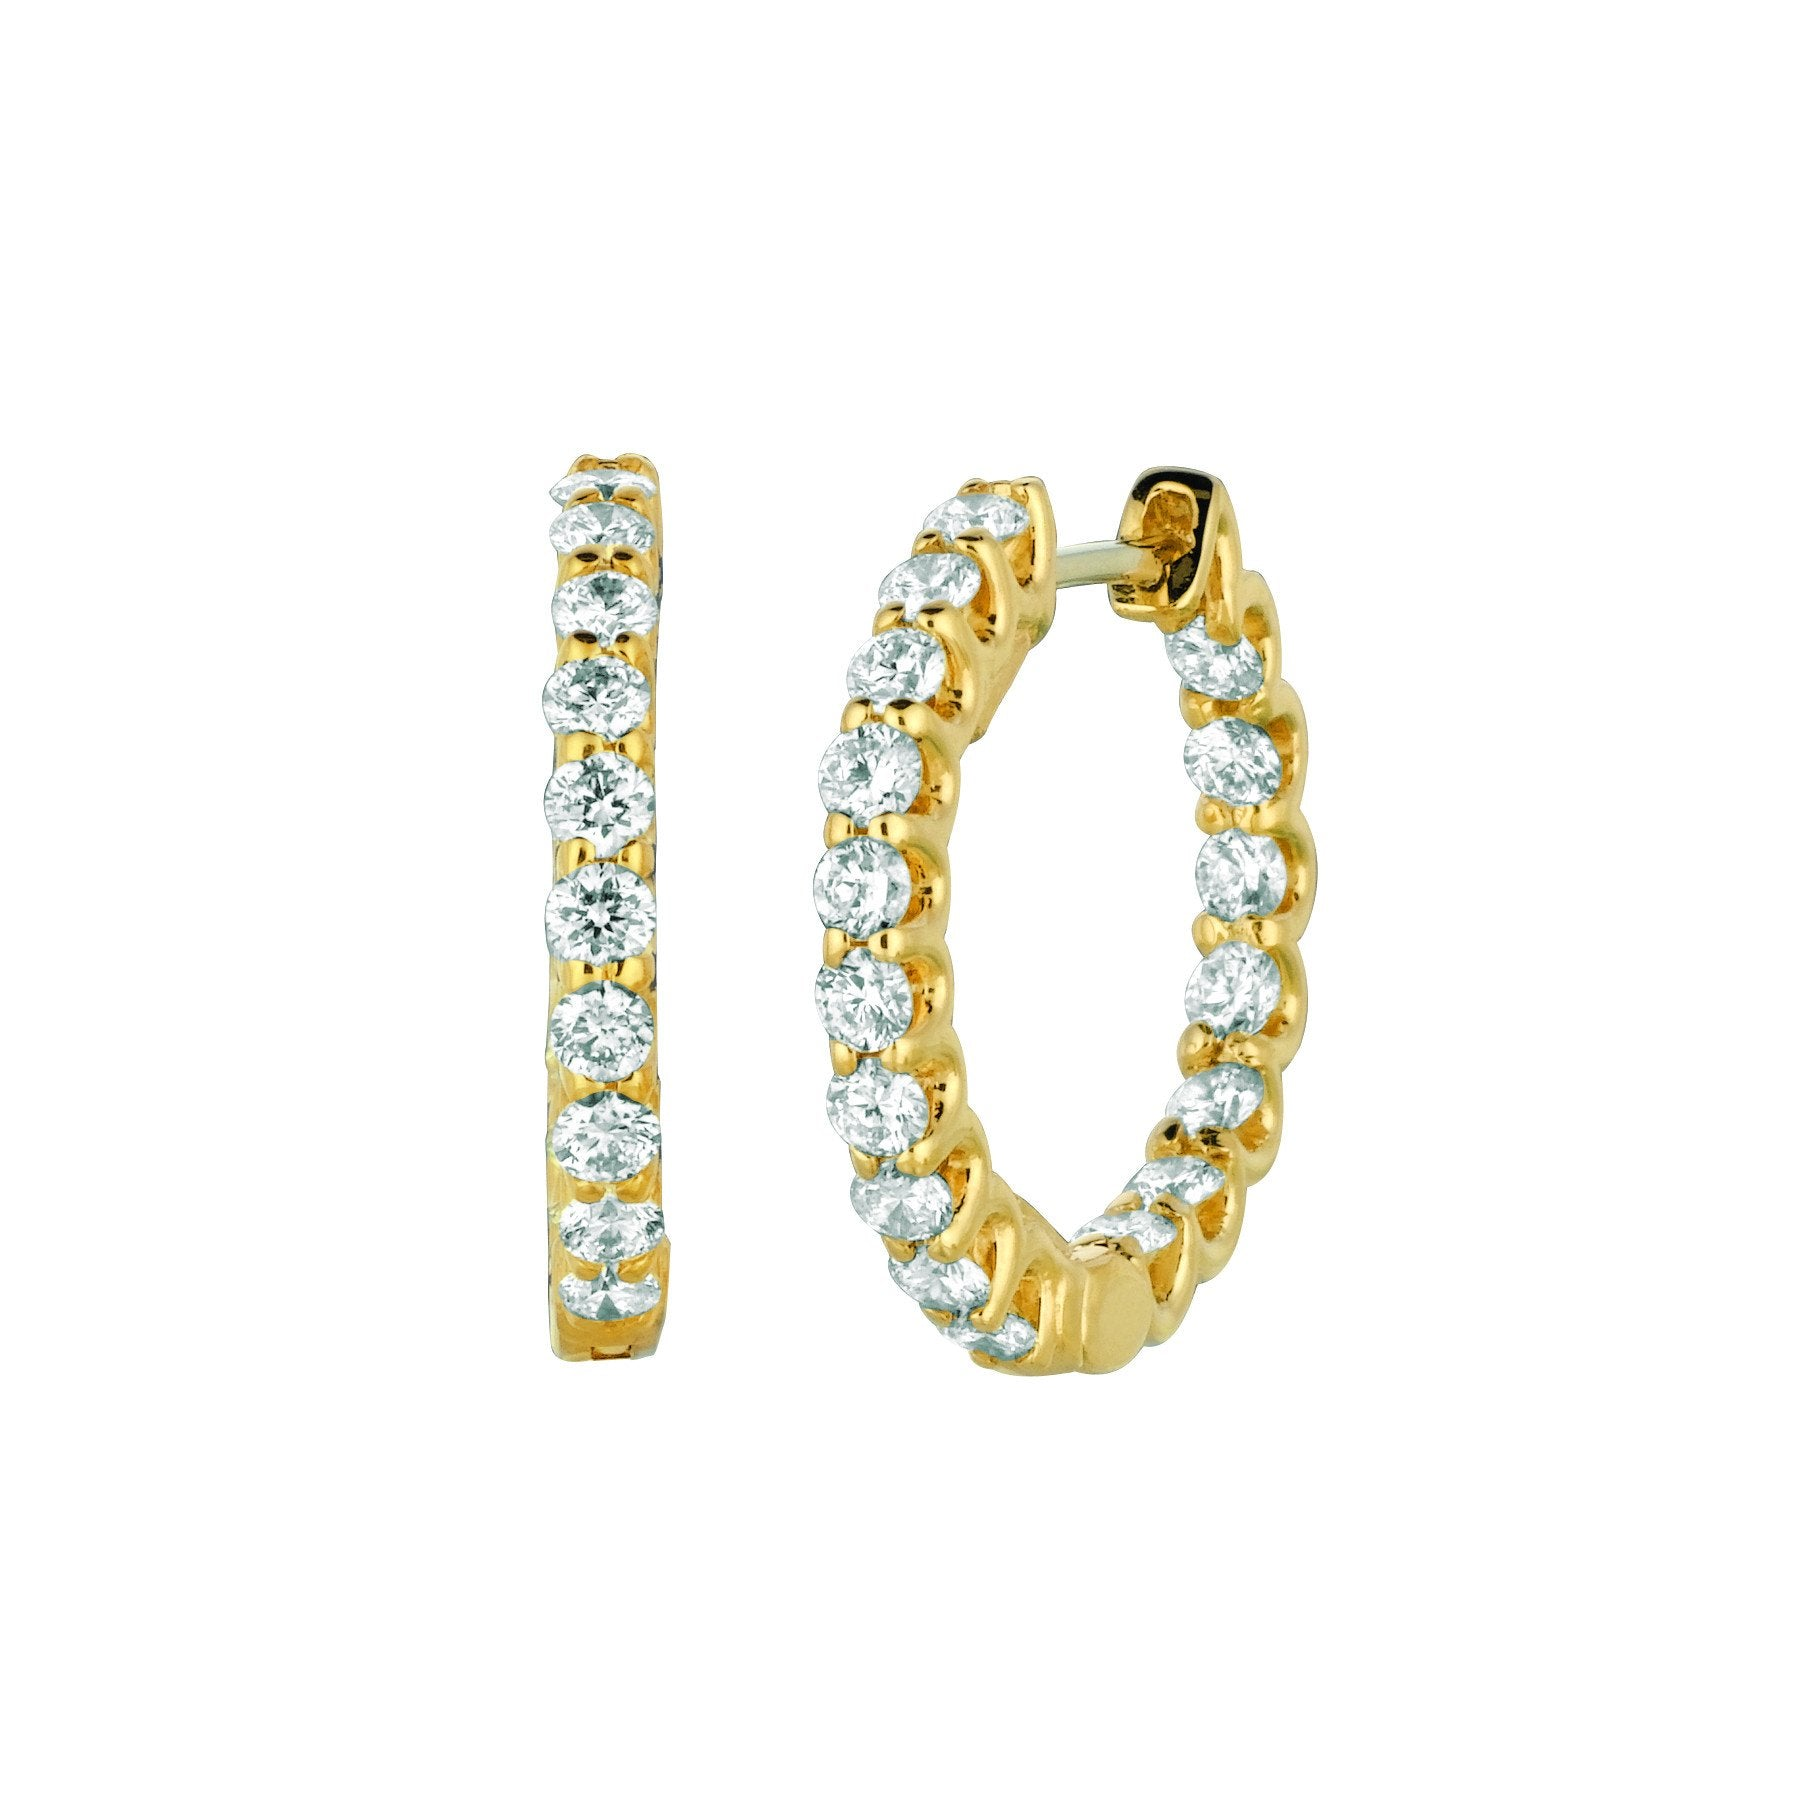 Diamond Hoop Earrings 1.36 Carats 14K Yellow Hoop Earrings